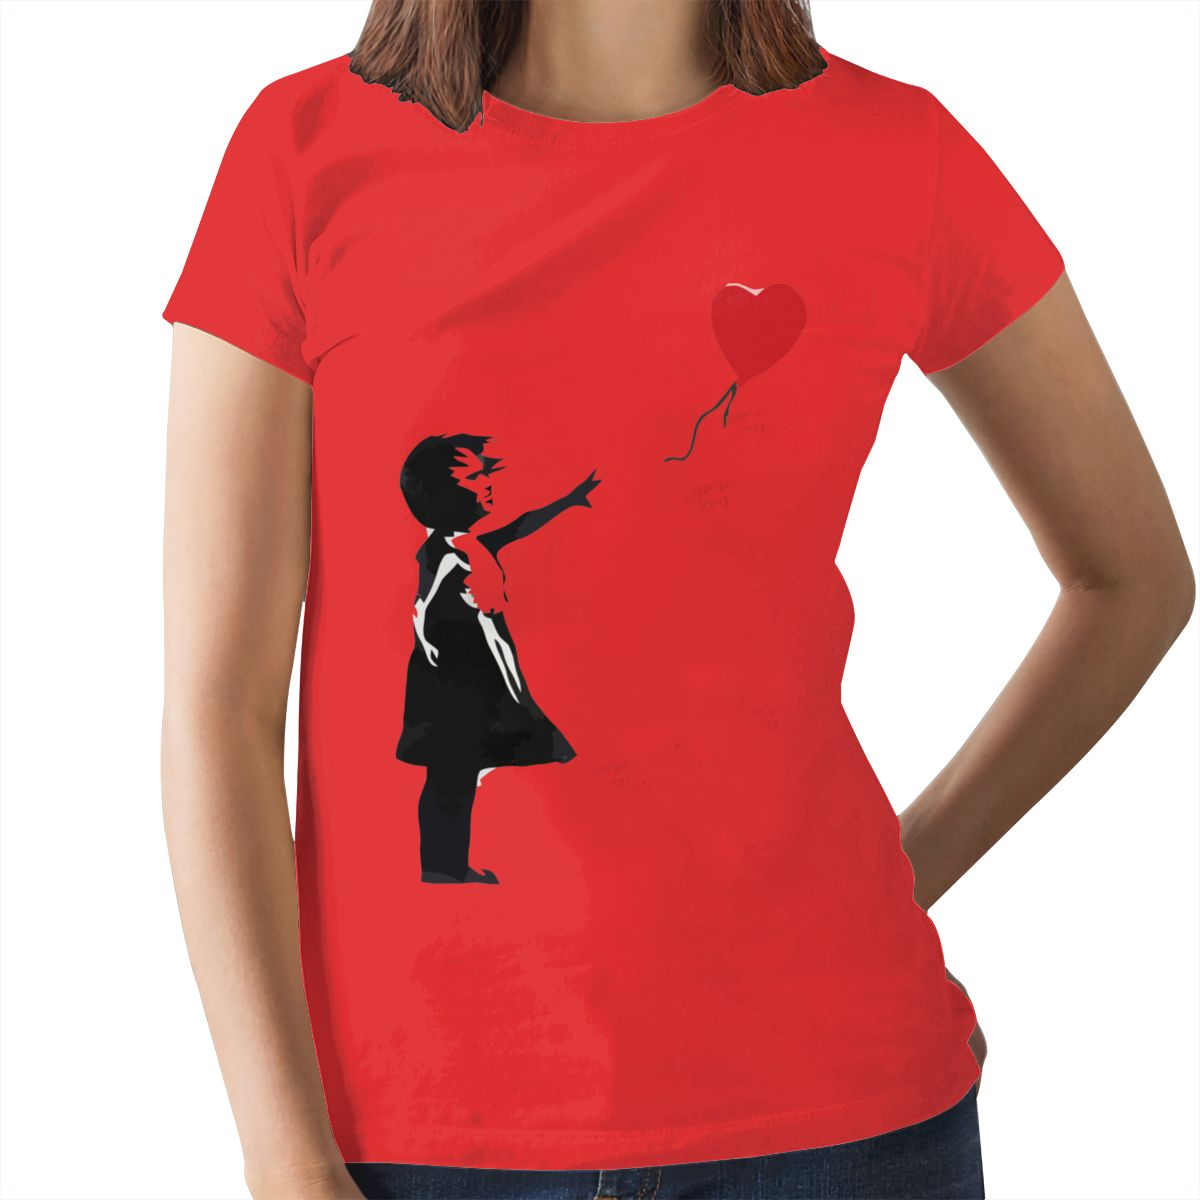 Heart Love T-Shirt Banksy Girl With Balloon T Shirt Trendy Purple Women tshirt Cotton Graphic Ladies Tee Shirt 11